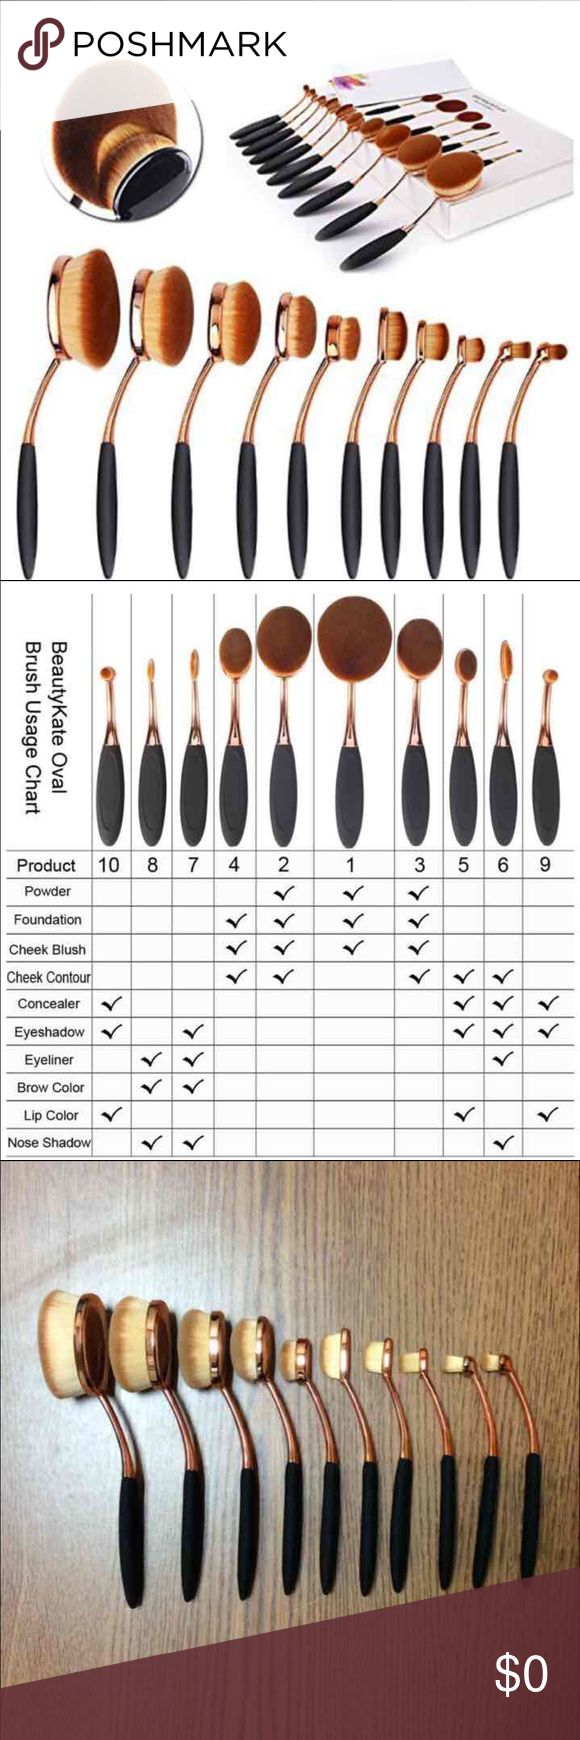 10 pc Rose Gold Oval Makeup Brushes Circle 1: Lip/Eye Shadow/Brow Circle 2: Lip/Eye Shadow Linear 3: Eye Shadow/Brow/Eye Liner Linear 4: Eye Shadow/Brow/Eye Liner Linear 5: Eye Shadow/Eye Liner/Cheek/Blush/Contour/Concealer Oval 6: Lip Colour/Eye Shadow/Concealer Oval 7: Cheek Contour/Foundation/Setting Powder/Eye shadow/Concealer Oval 8: Cheek Blush & Contour/Foundation/Setting Powder/Eye shadow/Concealer Oval 9: Cheek Blush/Contour/Foundation/Bronzing/Setting Powder Oval 10…